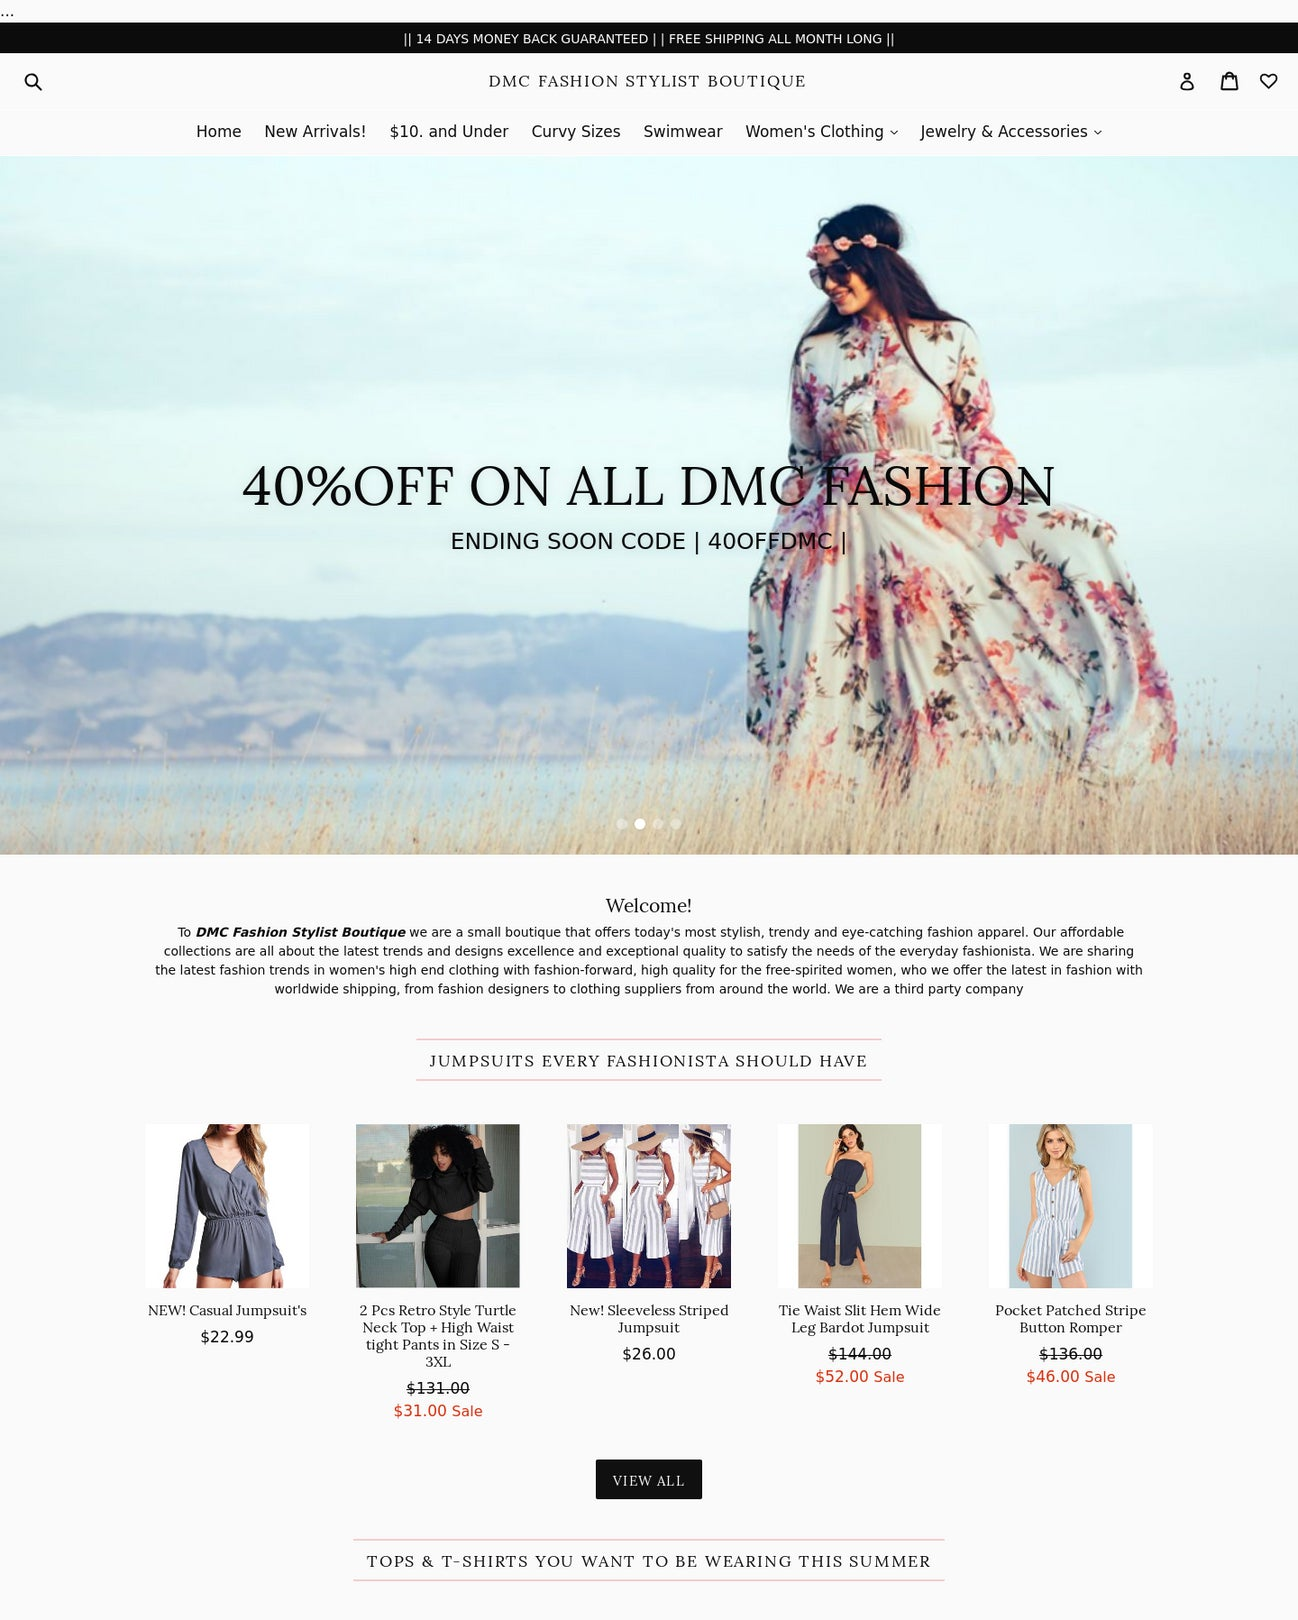 Fashion Design Home Business | Dmc Fashion Stylist For Sale Buy An Online Business